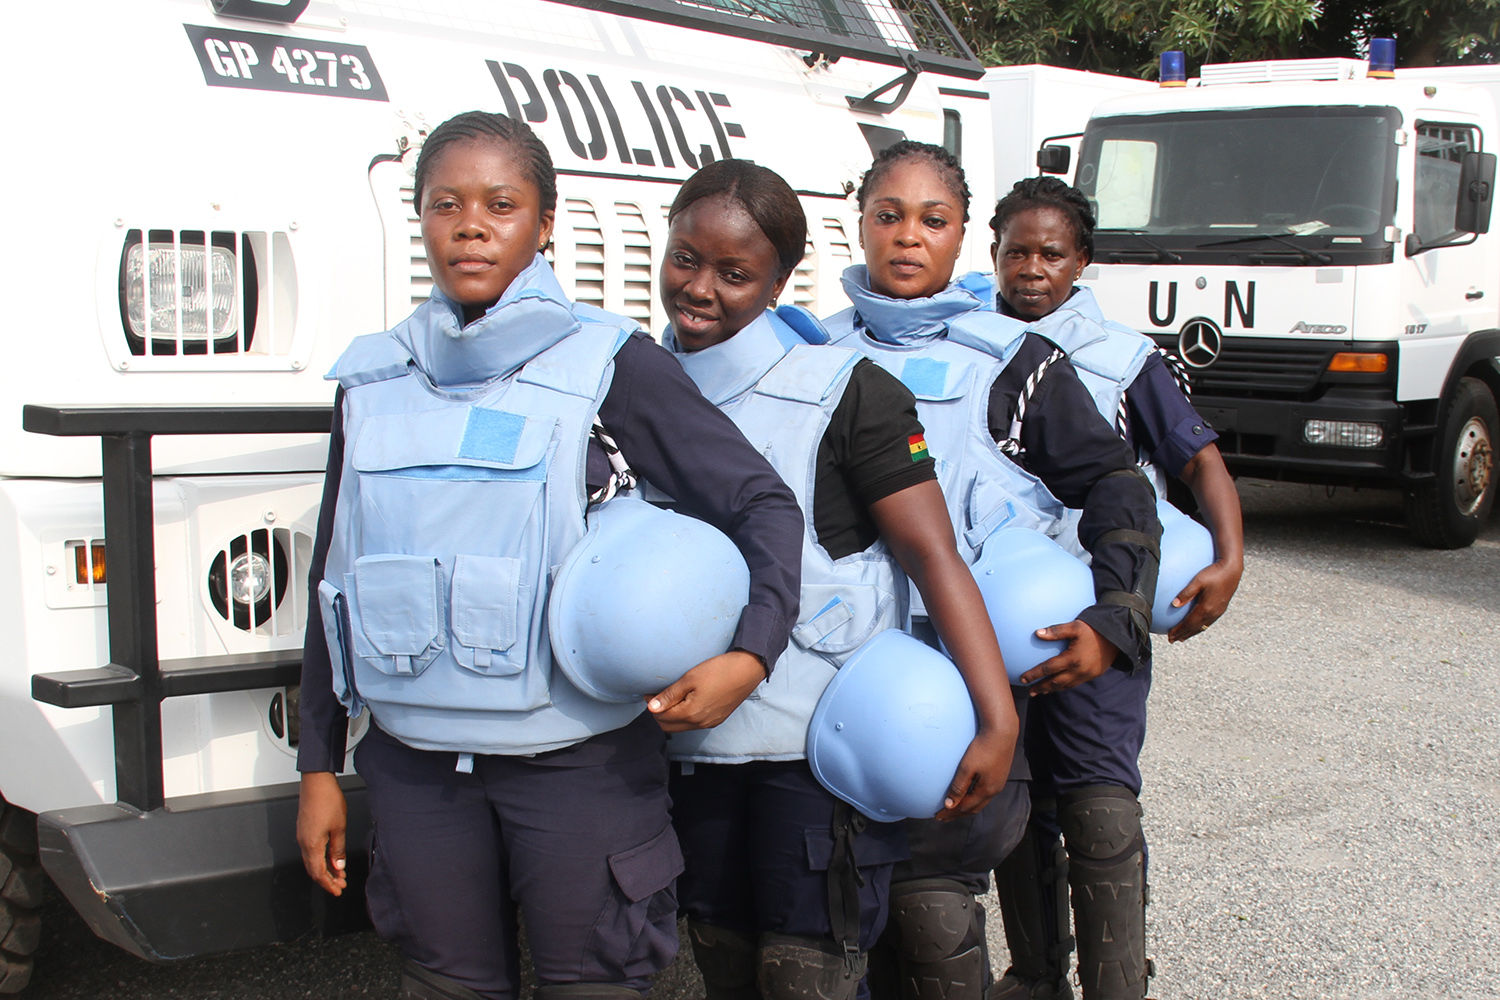 Female formed police unit personnel during a pre-deployment visit in Ghana in February 2017.